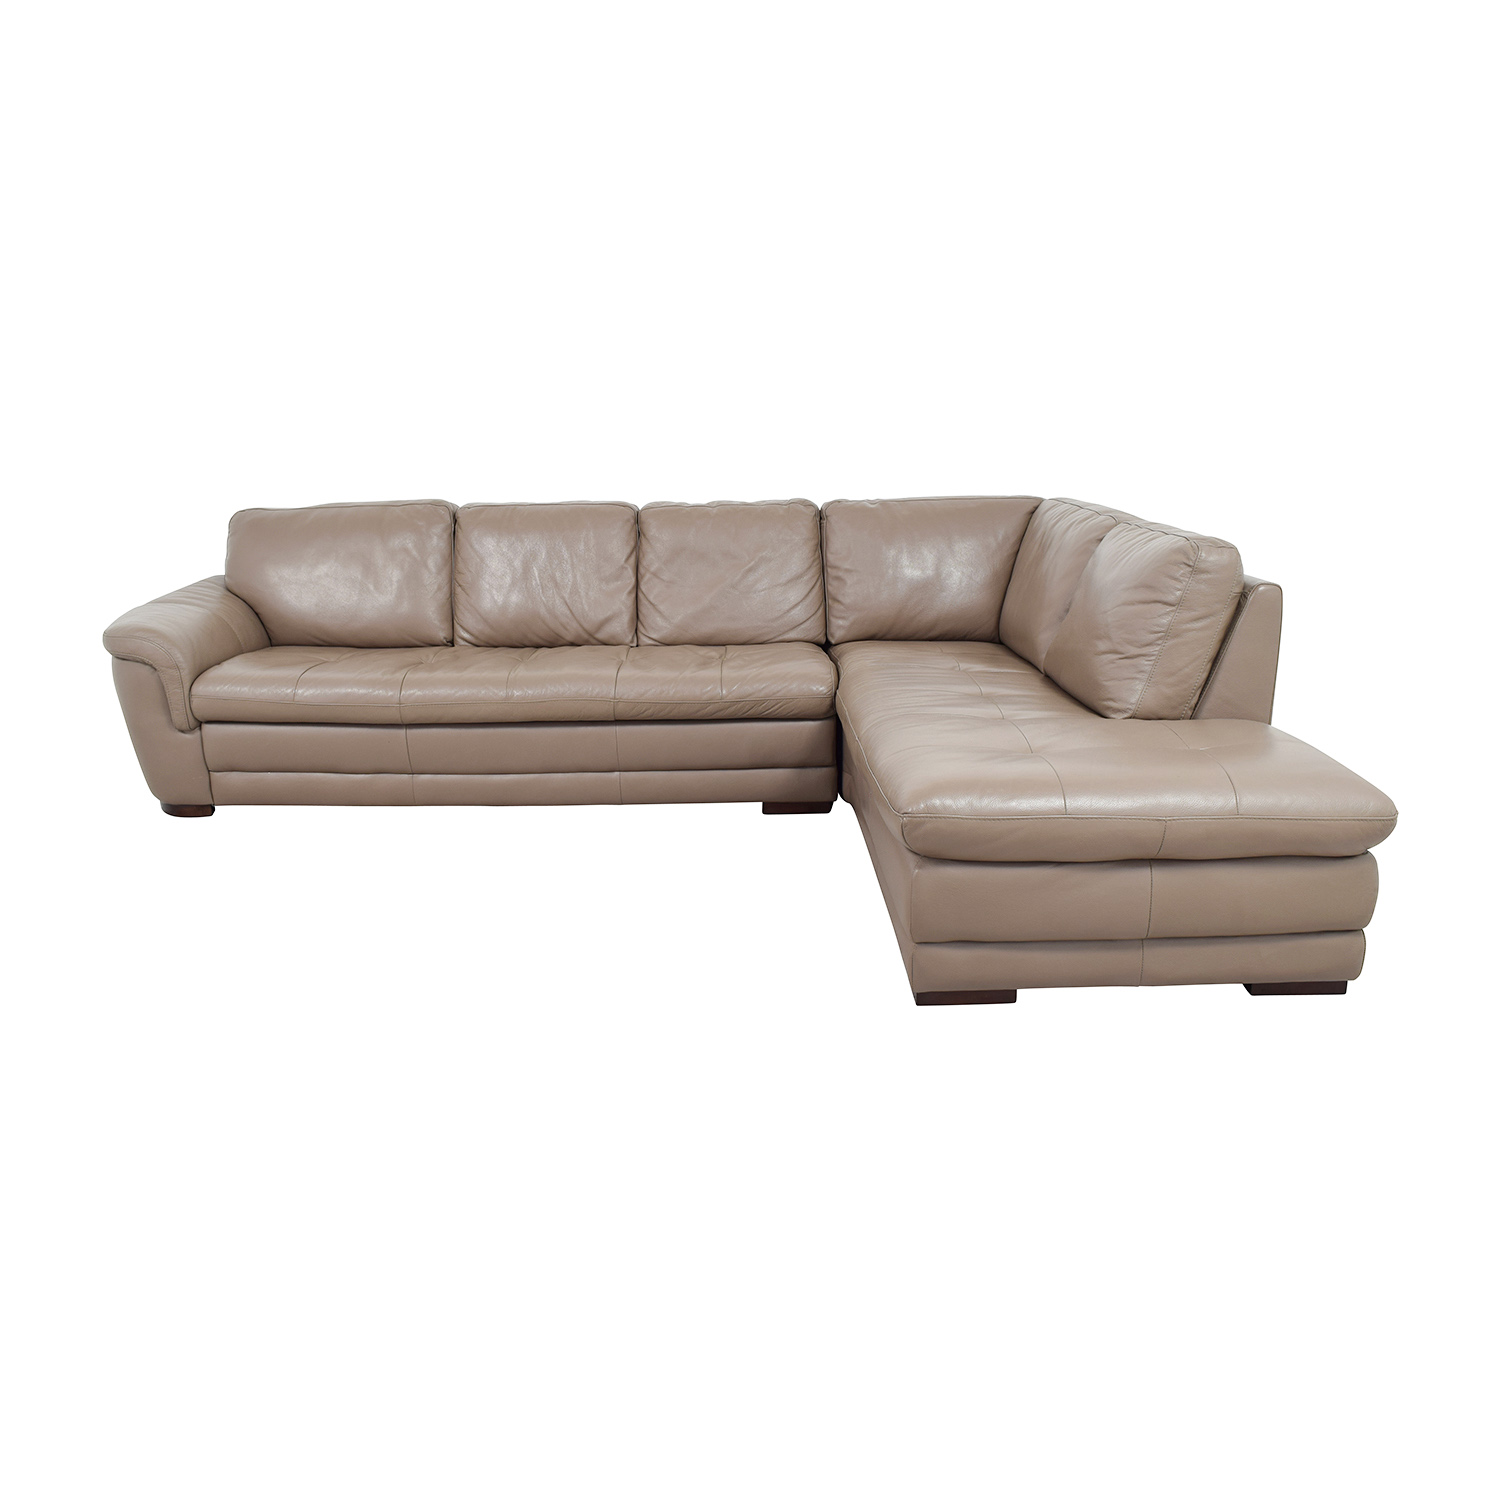 Raymour and Flanigan Raymour & Flanigan Tan Tufted Leather Sectional dimensions